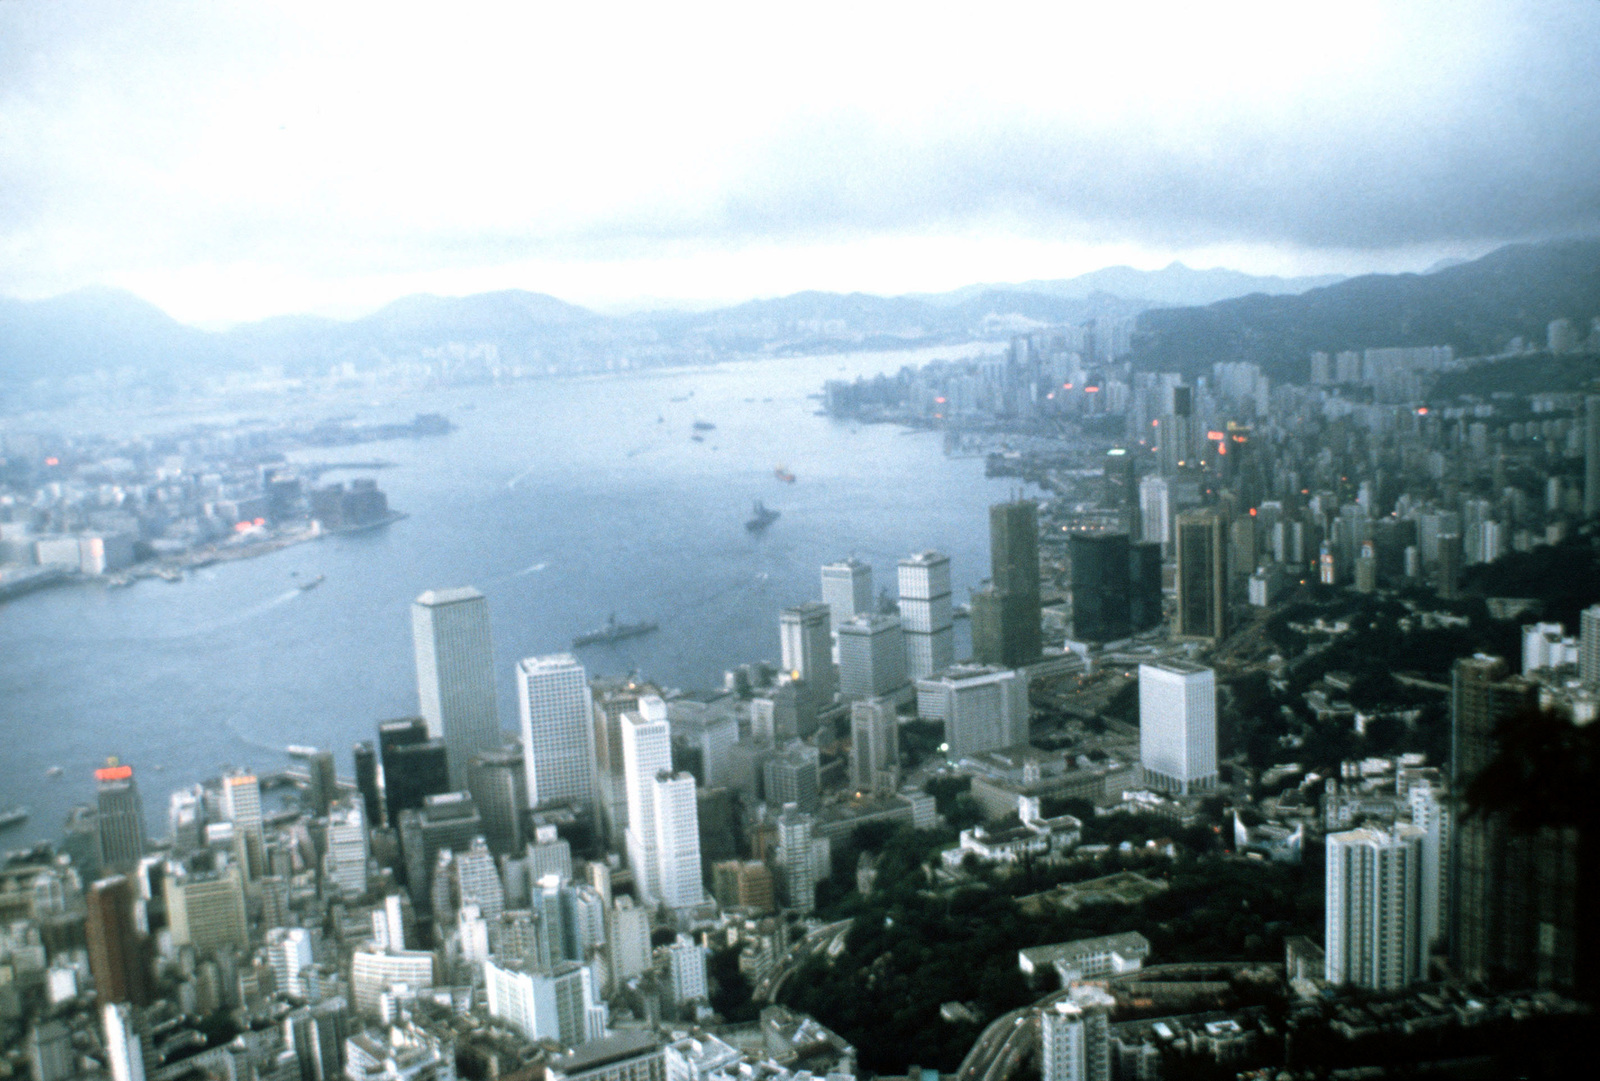 A view of the city and surrounding areas from Victoria Peak